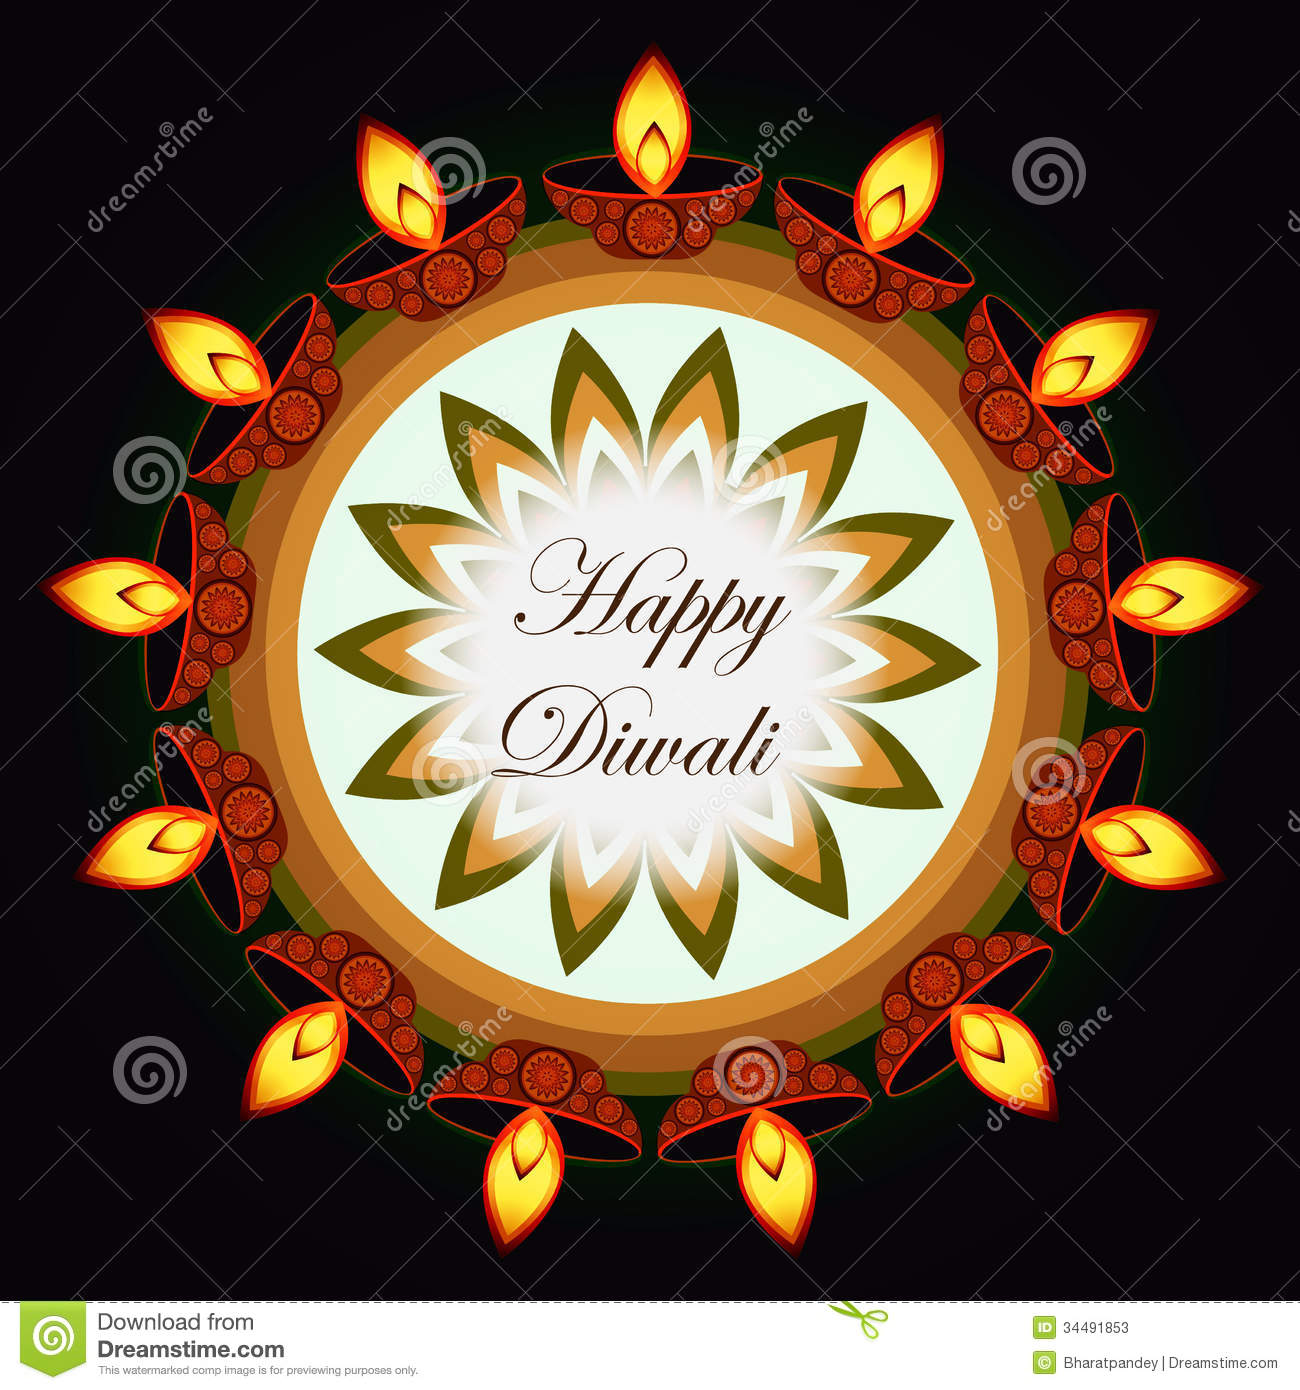 Beautiful diwali greeting card stock illustration illustration beautiful diwali greeting card royalty free stock photo kristyandbryce Image collections